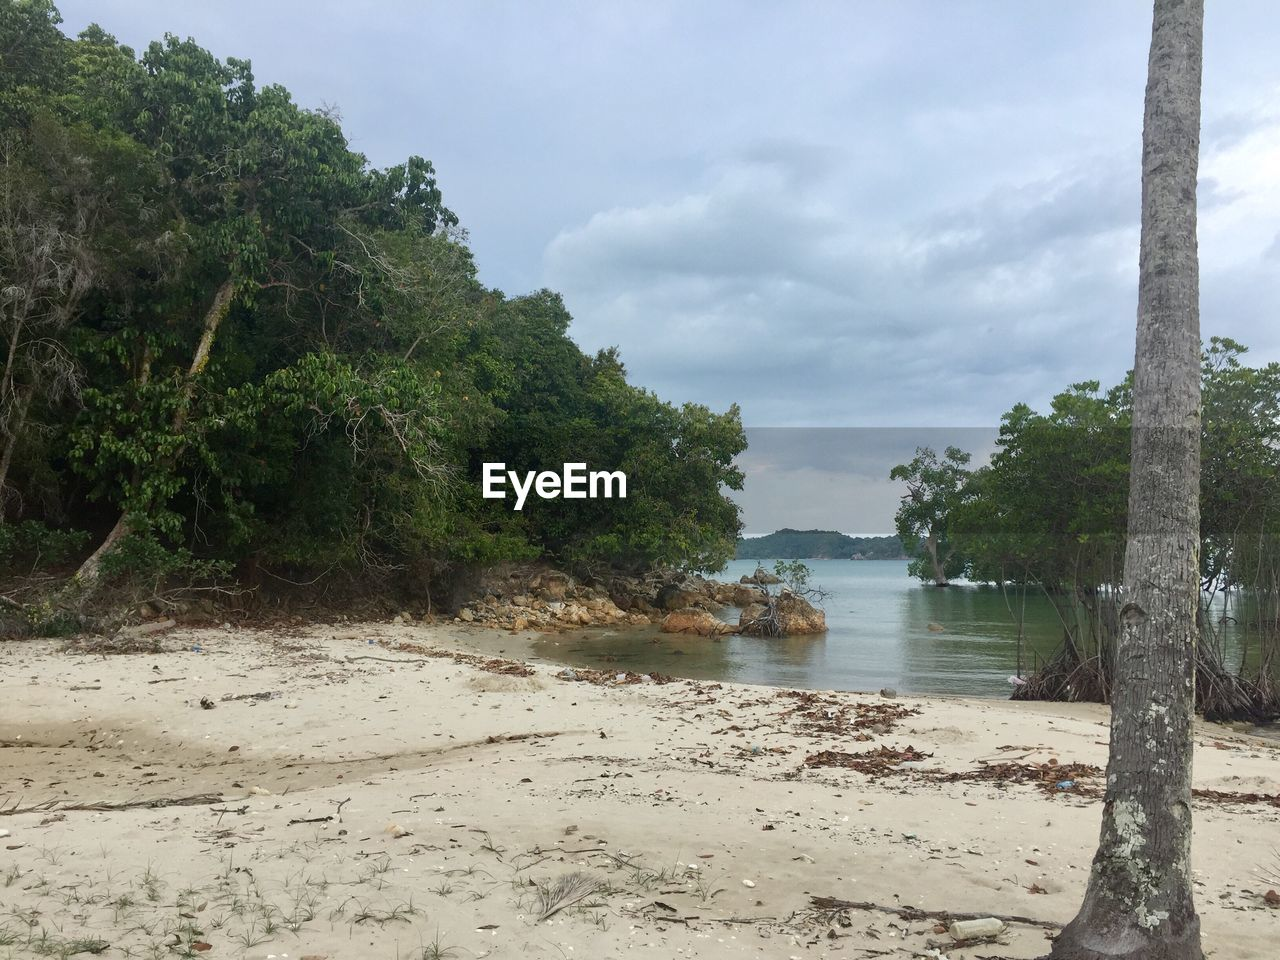 tree, plant, water, sky, land, beauty in nature, nature, scenics - nature, beach, day, tranquility, growth, cloud - sky, sea, tranquil scene, no people, non-urban scene, sand, outdoors